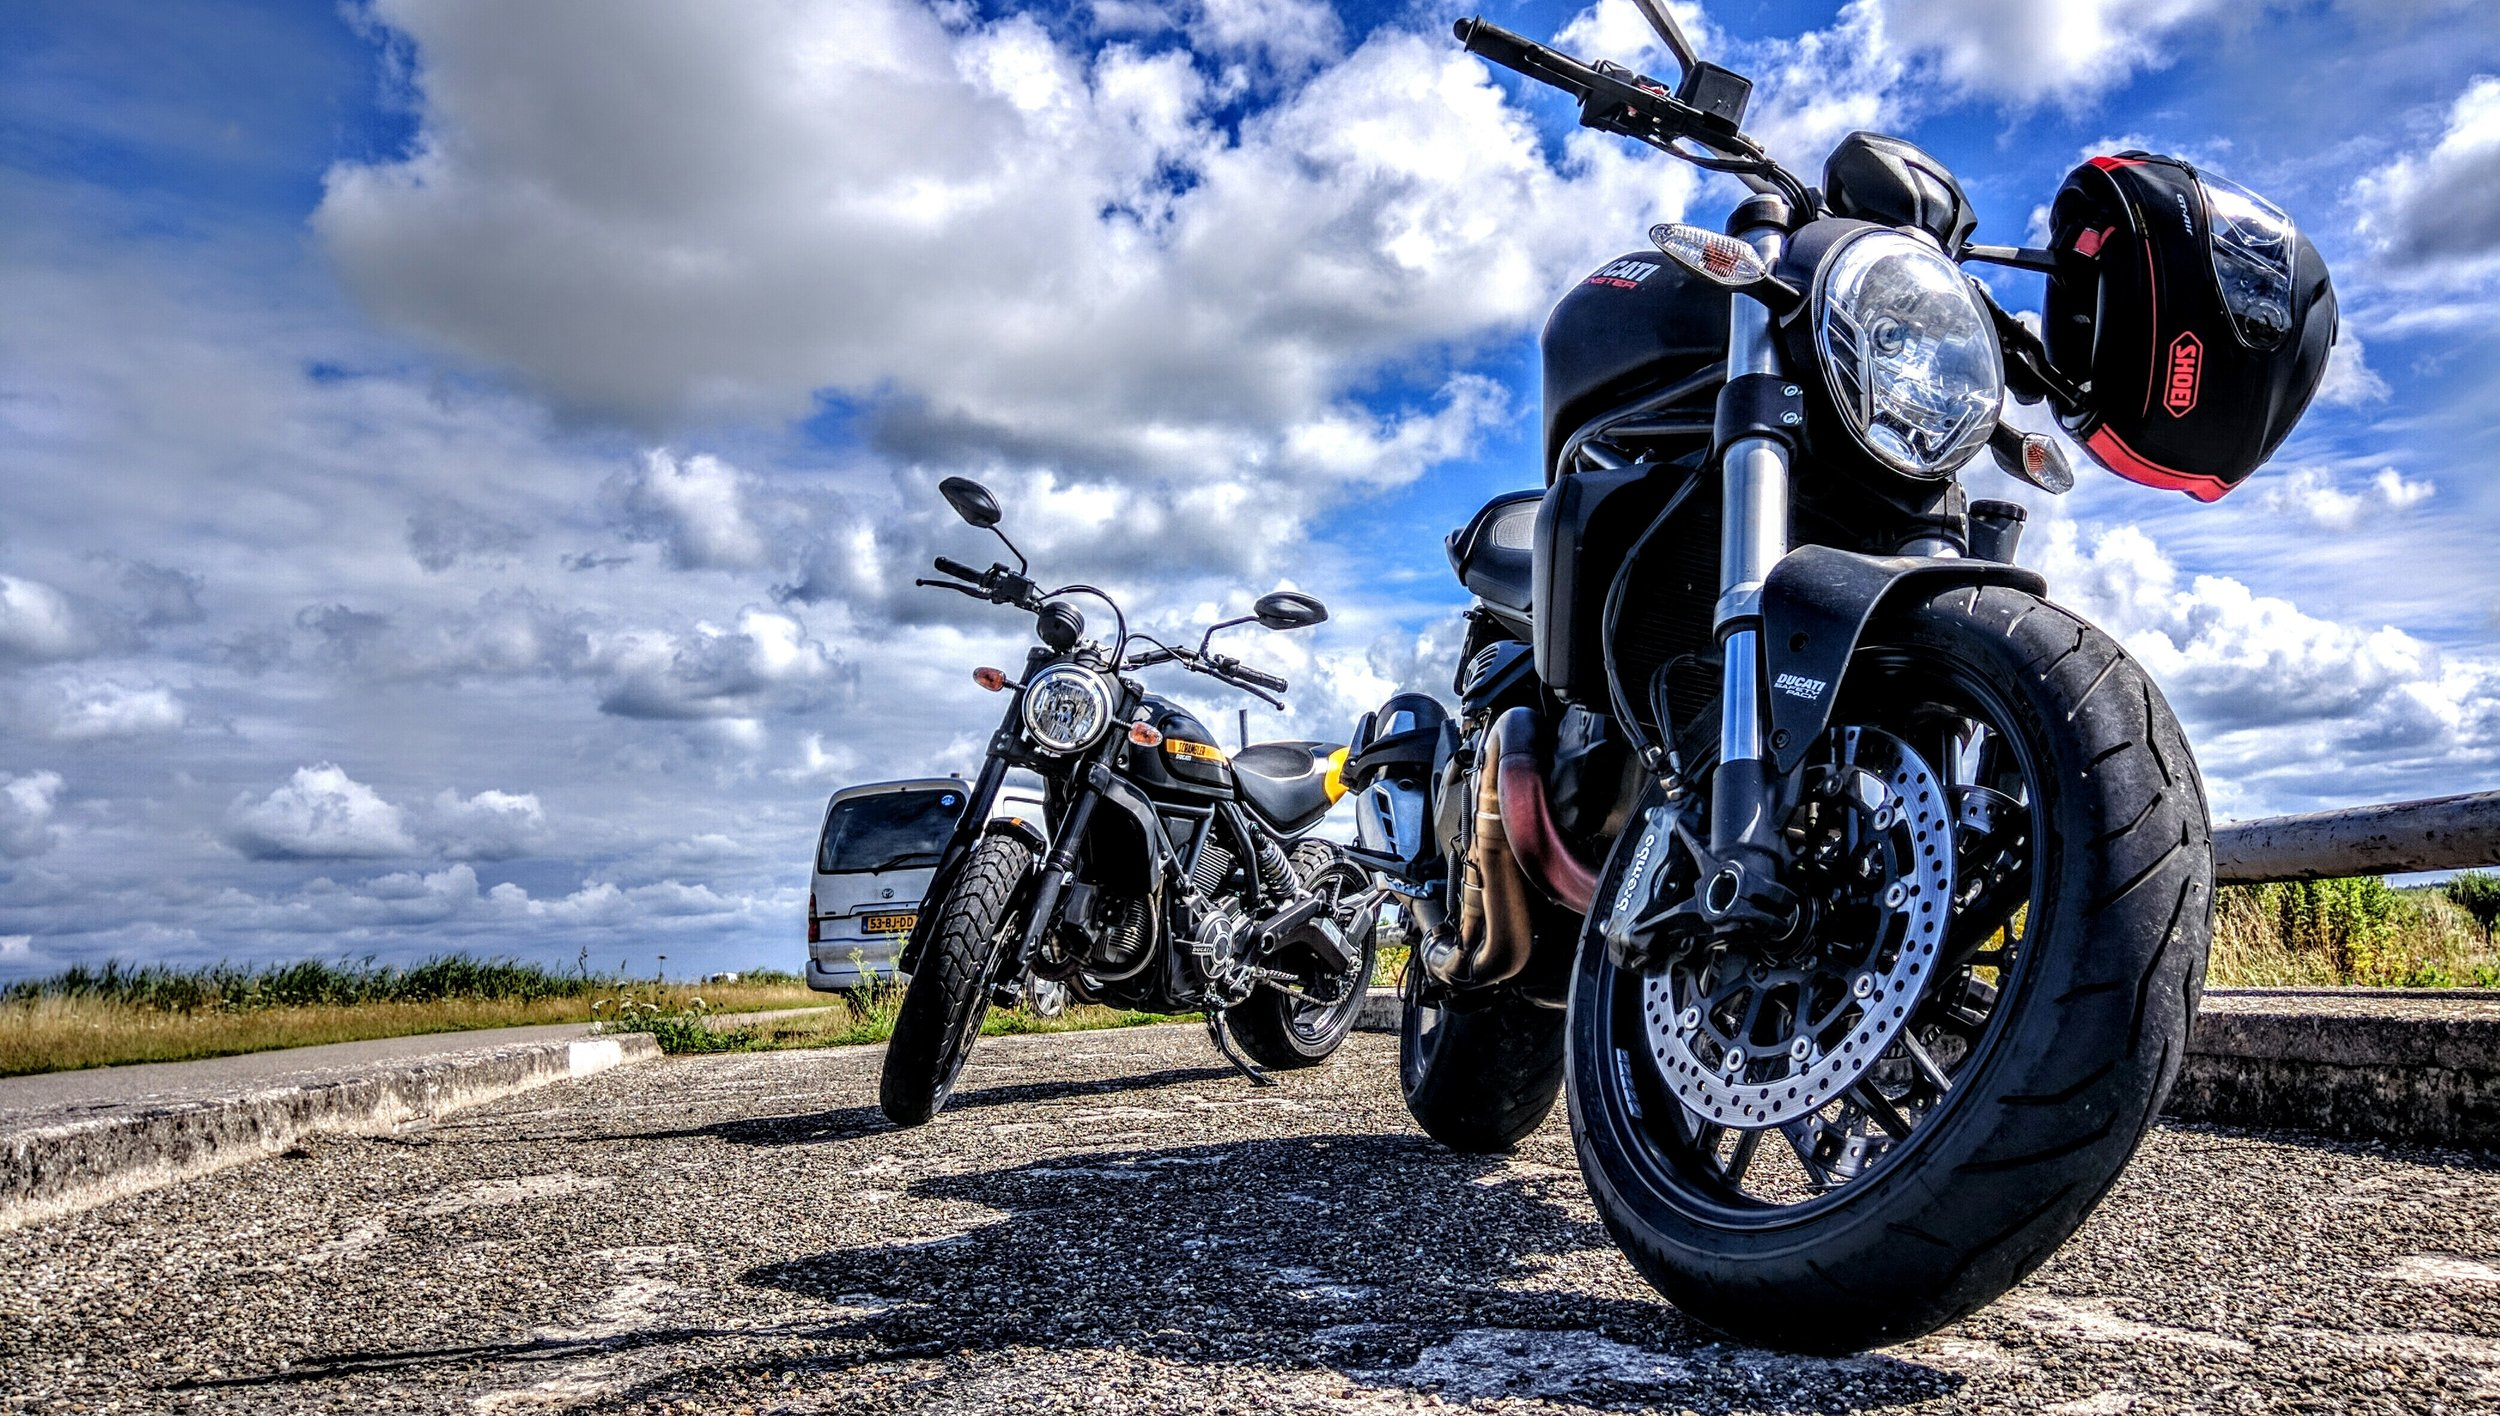 Photograph: Two motorcycles parked against a beautiful blue sky with dramatic clouds.